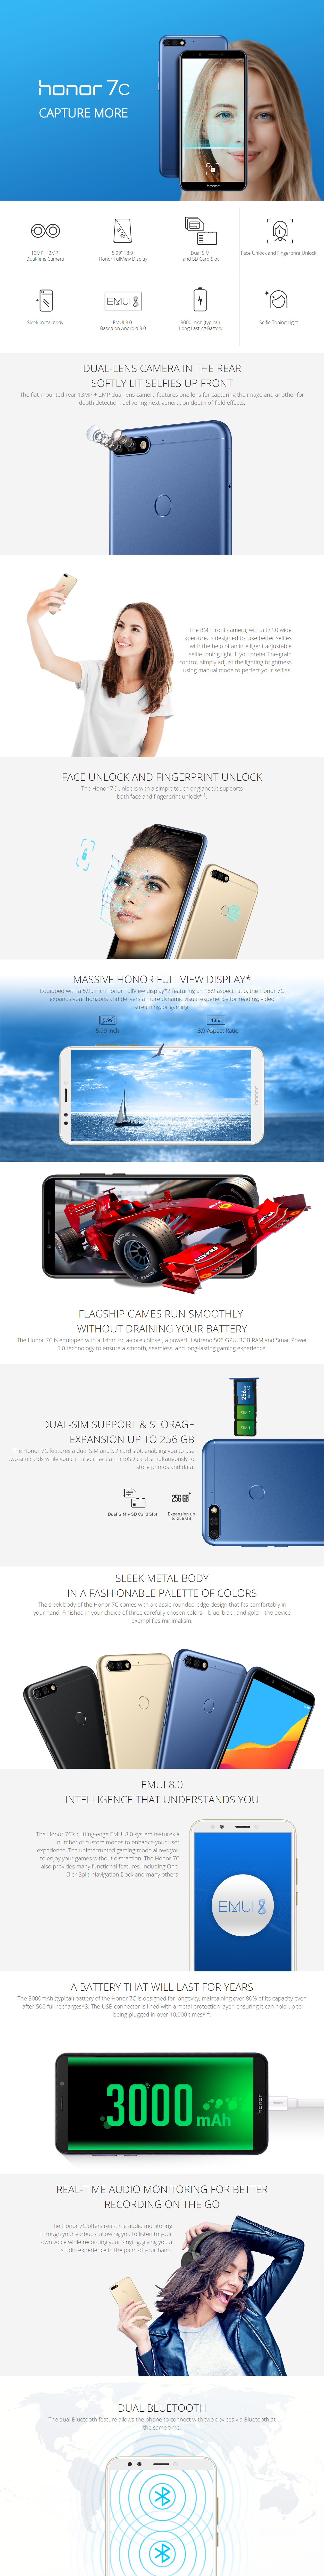 screencapture-hihonor-ca-products-smartphone-honor7c-2018-08-16-18_15_30f2dd6b423094703e.png